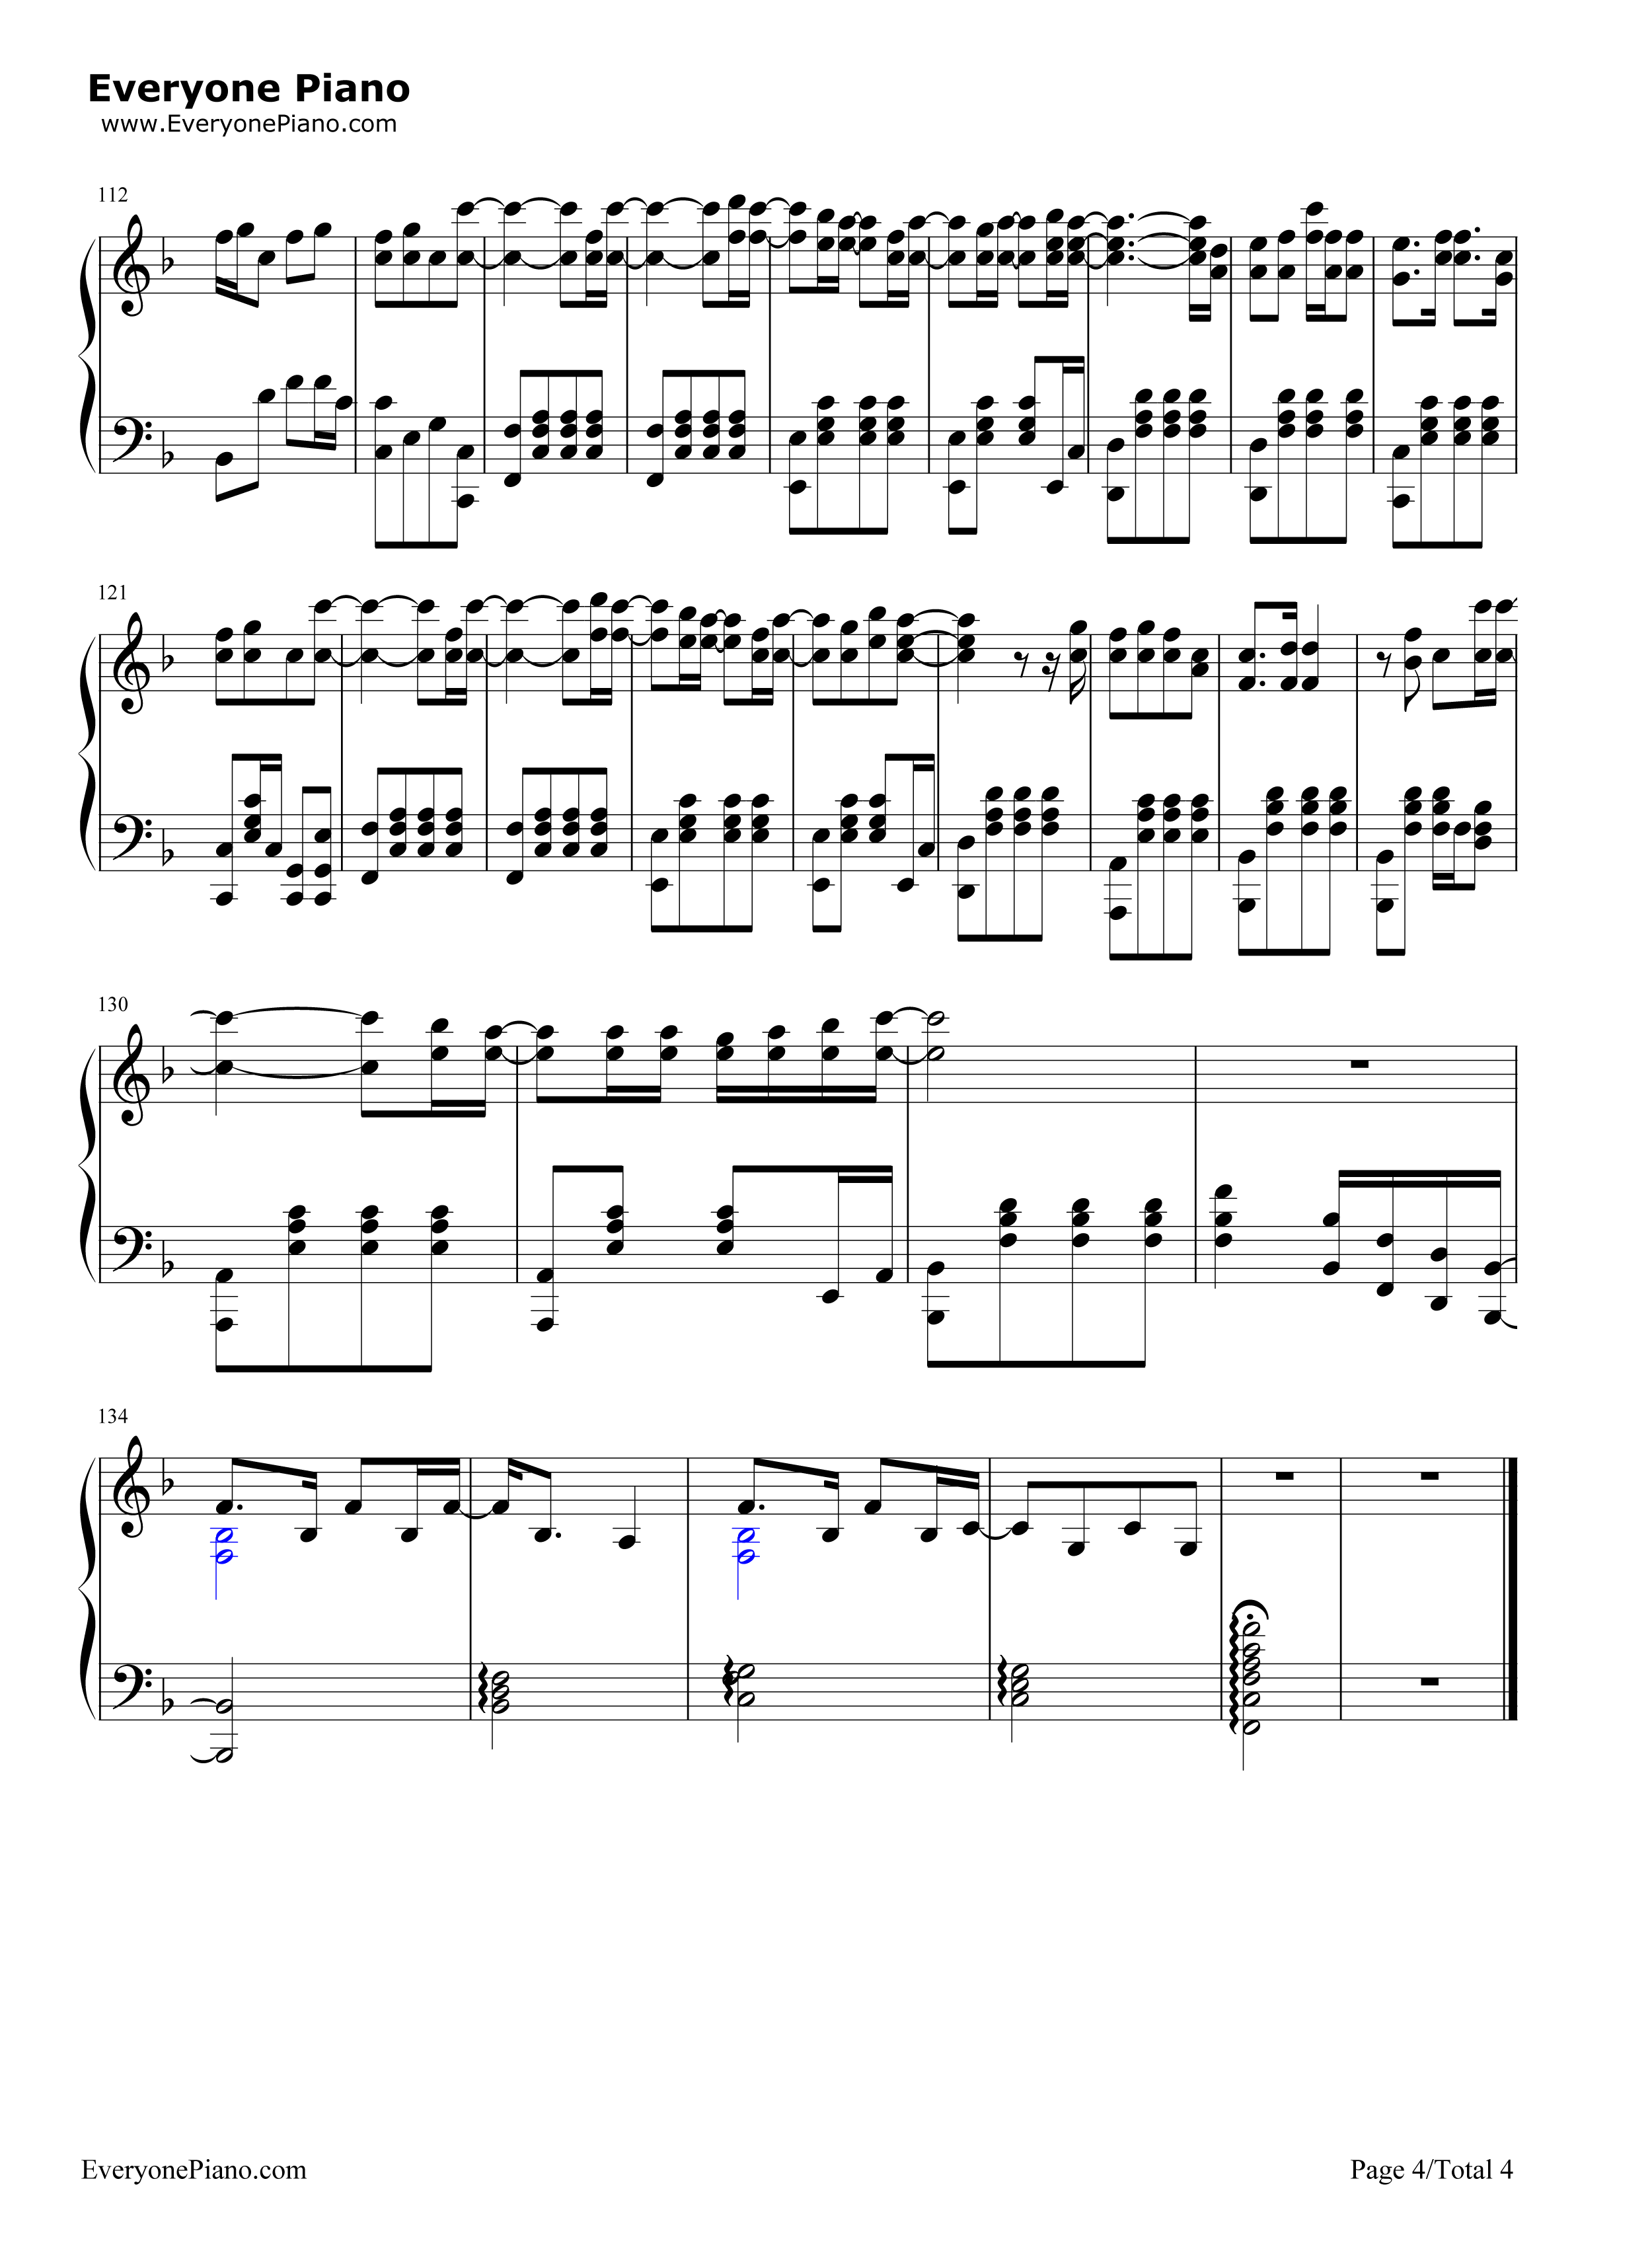 Release my soul guilty crown ost stave preview 4 free piano sheet listen now print sheet release my soul guilty crown ost stave preview 4 hexwebz Images